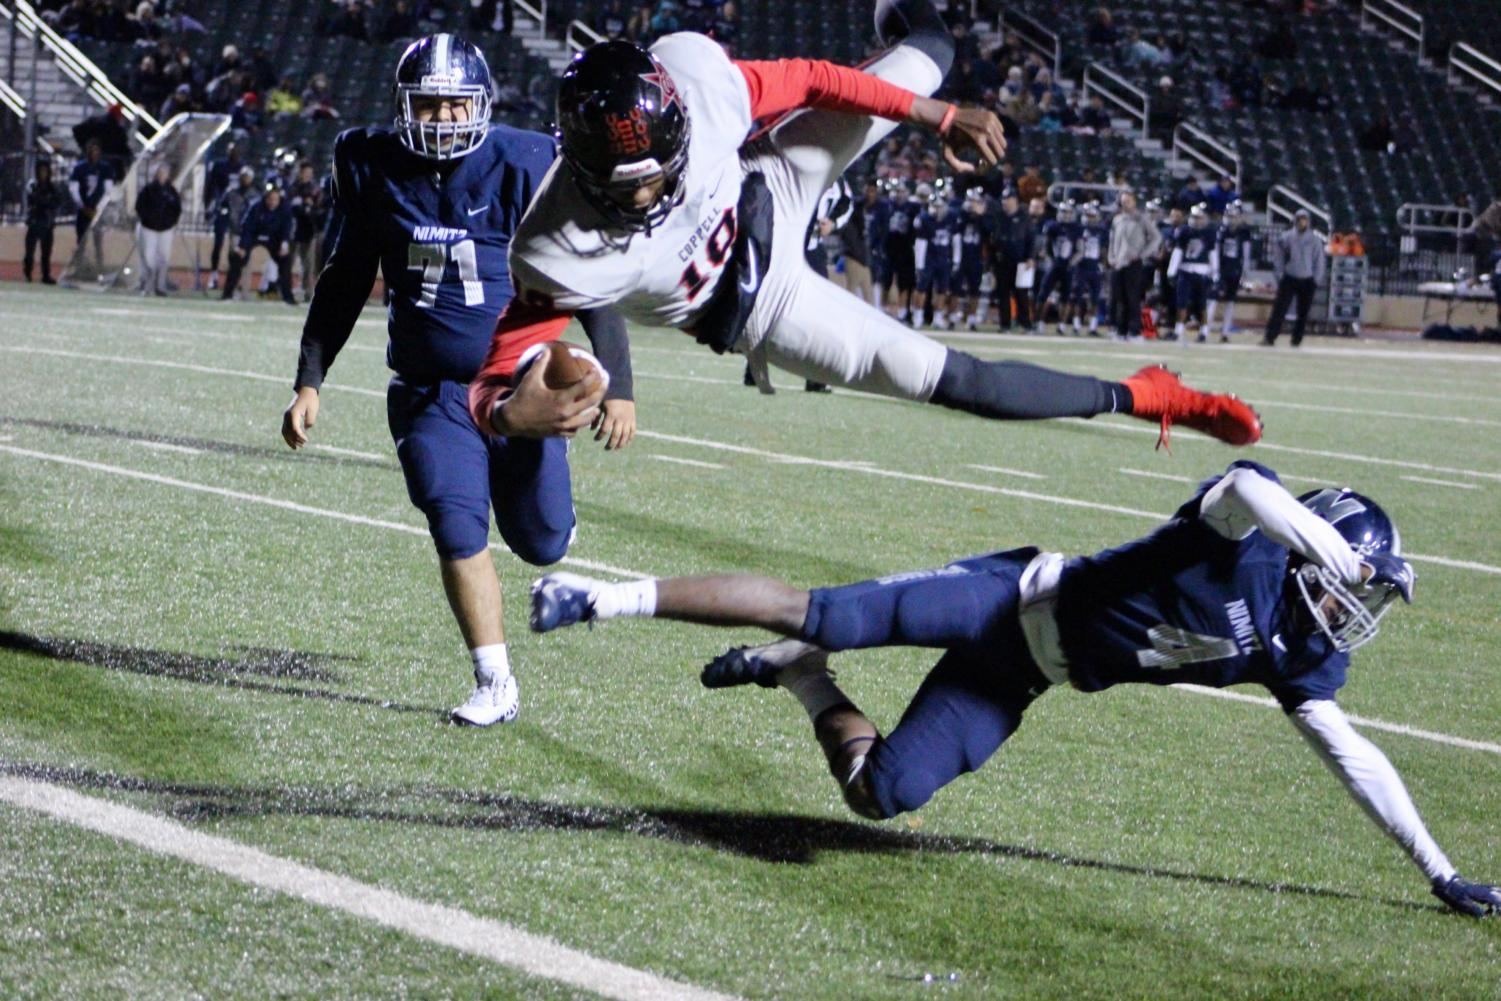 Coppell senior quarterback Taj Gregory dives into the end zone for a touchdown against Irving Nimitz on Nov. 9 at Joy and Ralph Ellis Stadium. The Cowboys defeated the Vikings, 35-14.